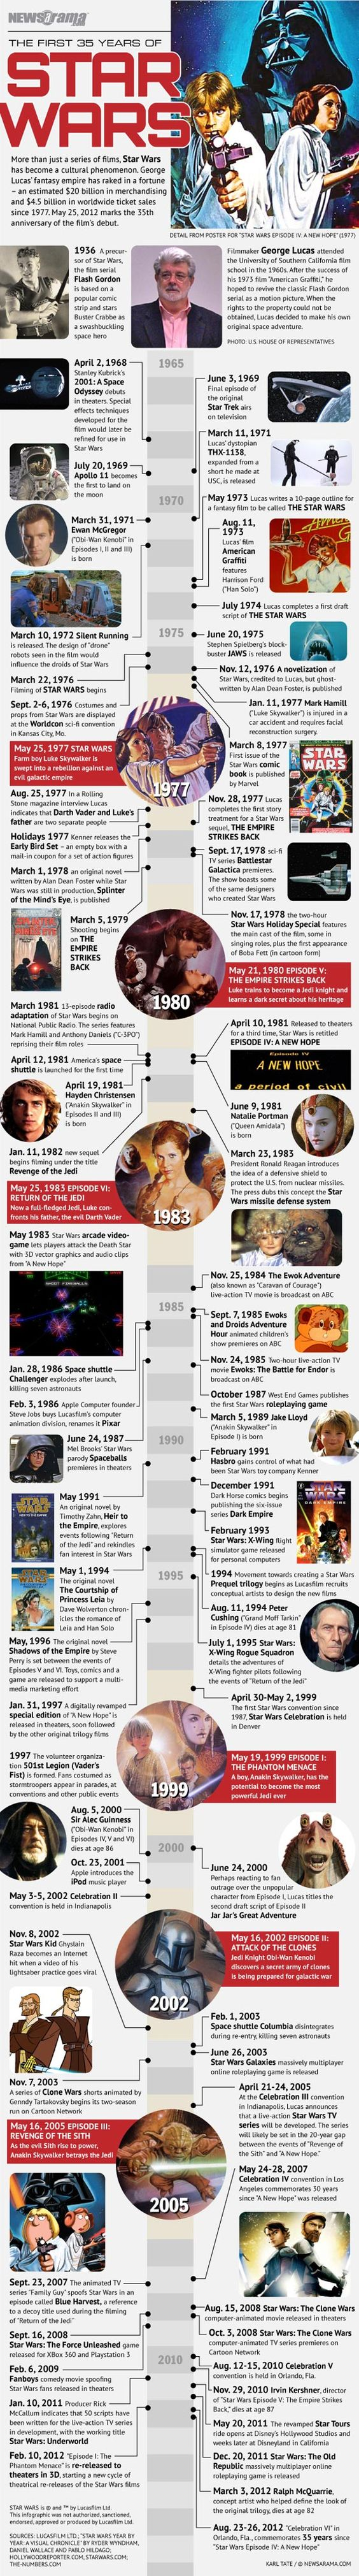 Star Wars 35th Anniversary Timeline Infographic: Infographic Starwars, Timeline Infographic, Years Infographic, Star Wars Timeline, 35 Years, Wars Infographics